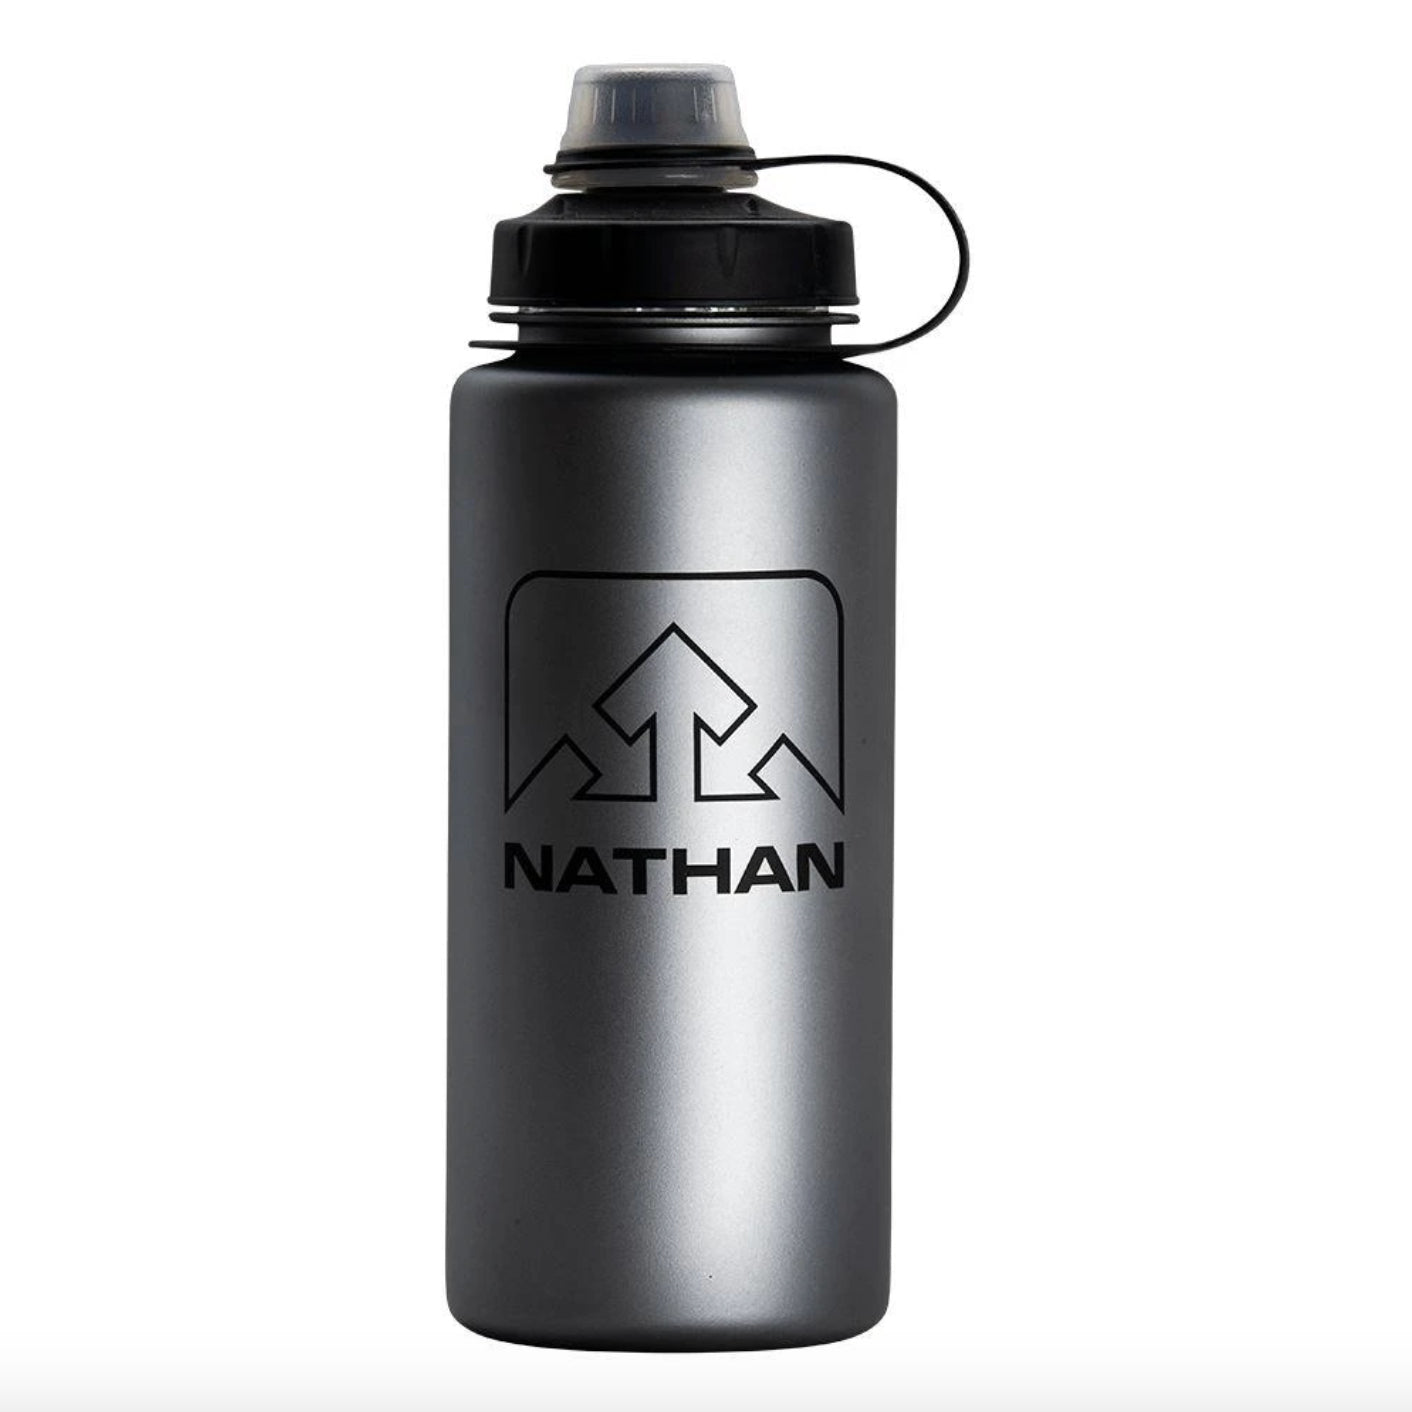 nathan littleshot 250 mL bottle in charcoal black